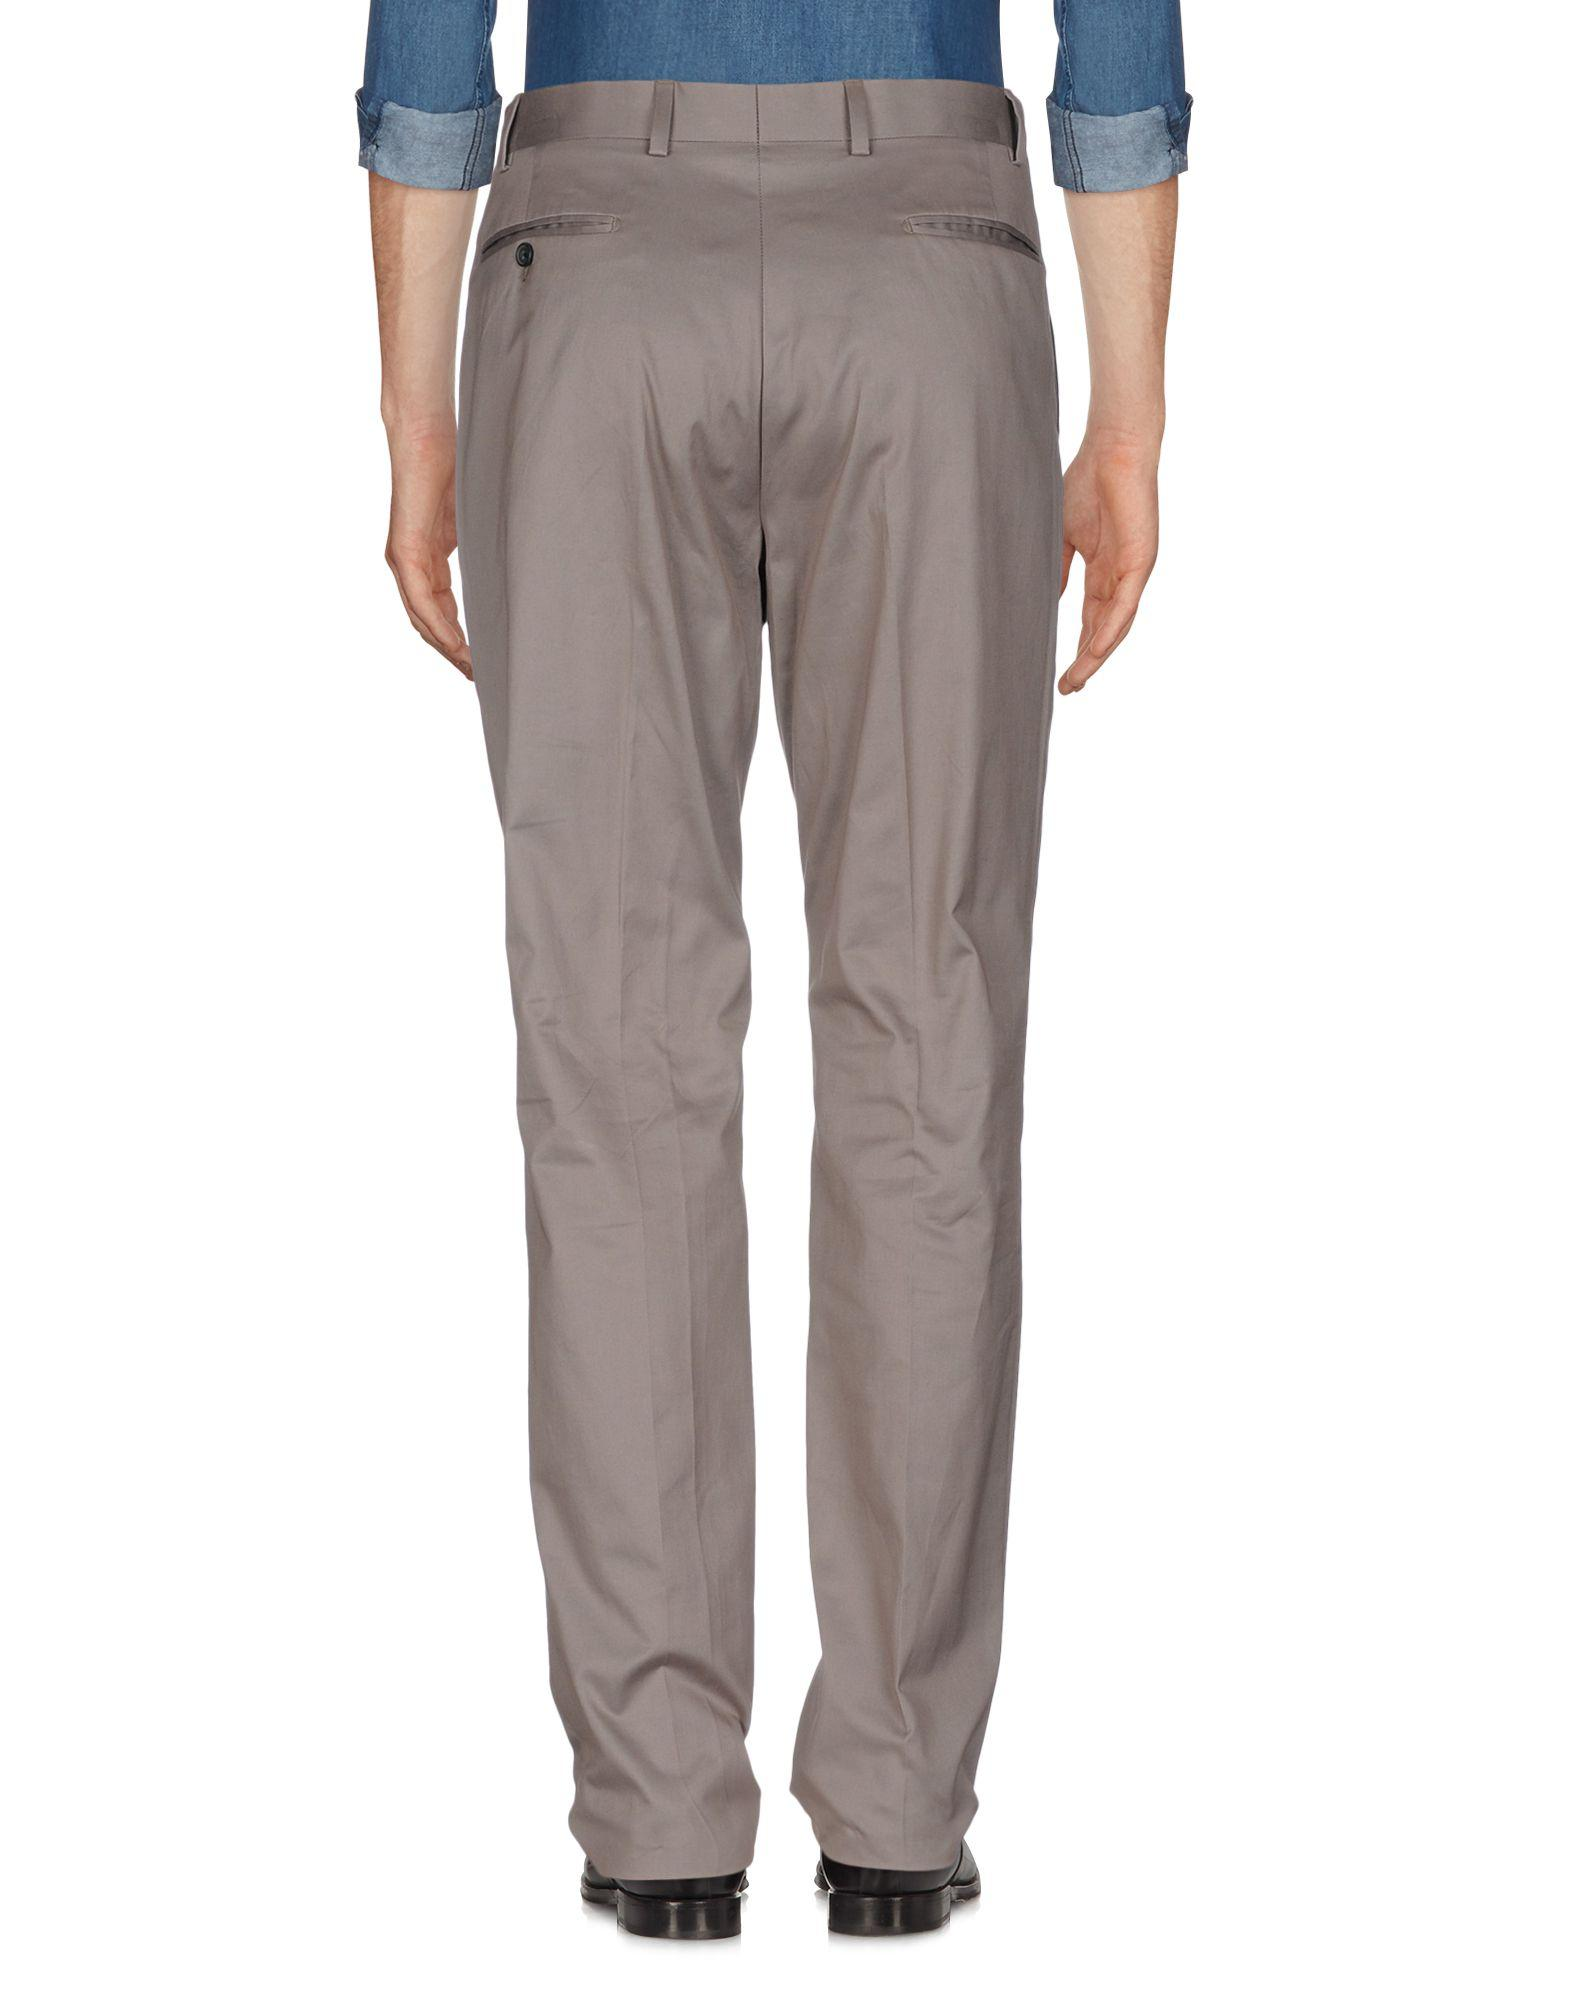 Richard James Cotton Casual Trouser in Grey (Grey) for Men